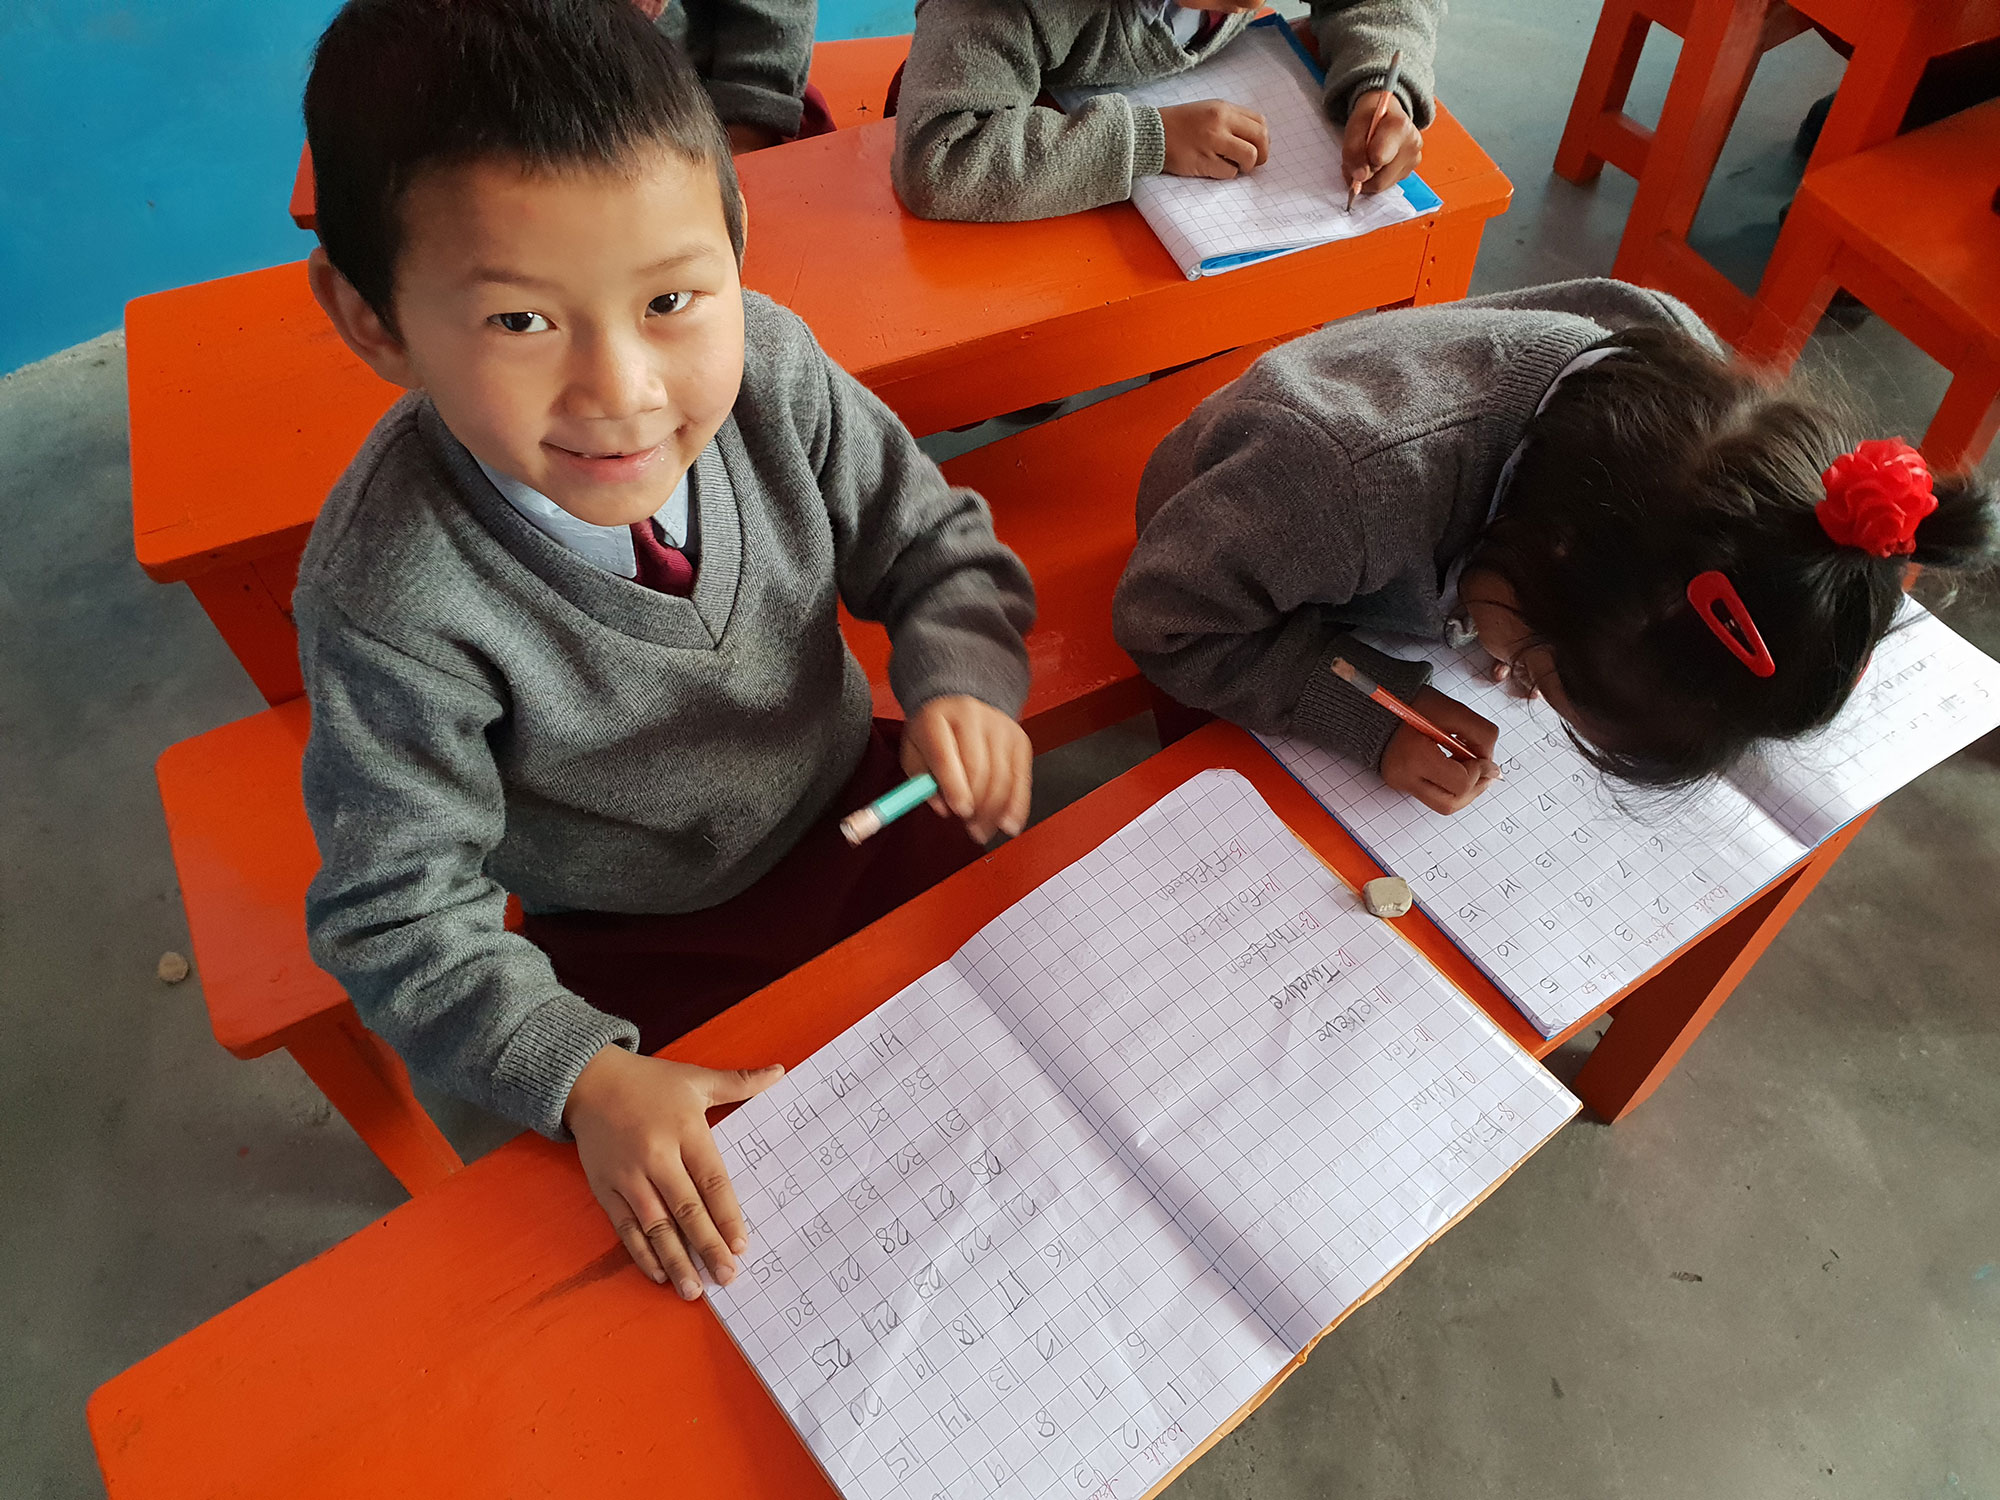 Learning maths in the Himalayas